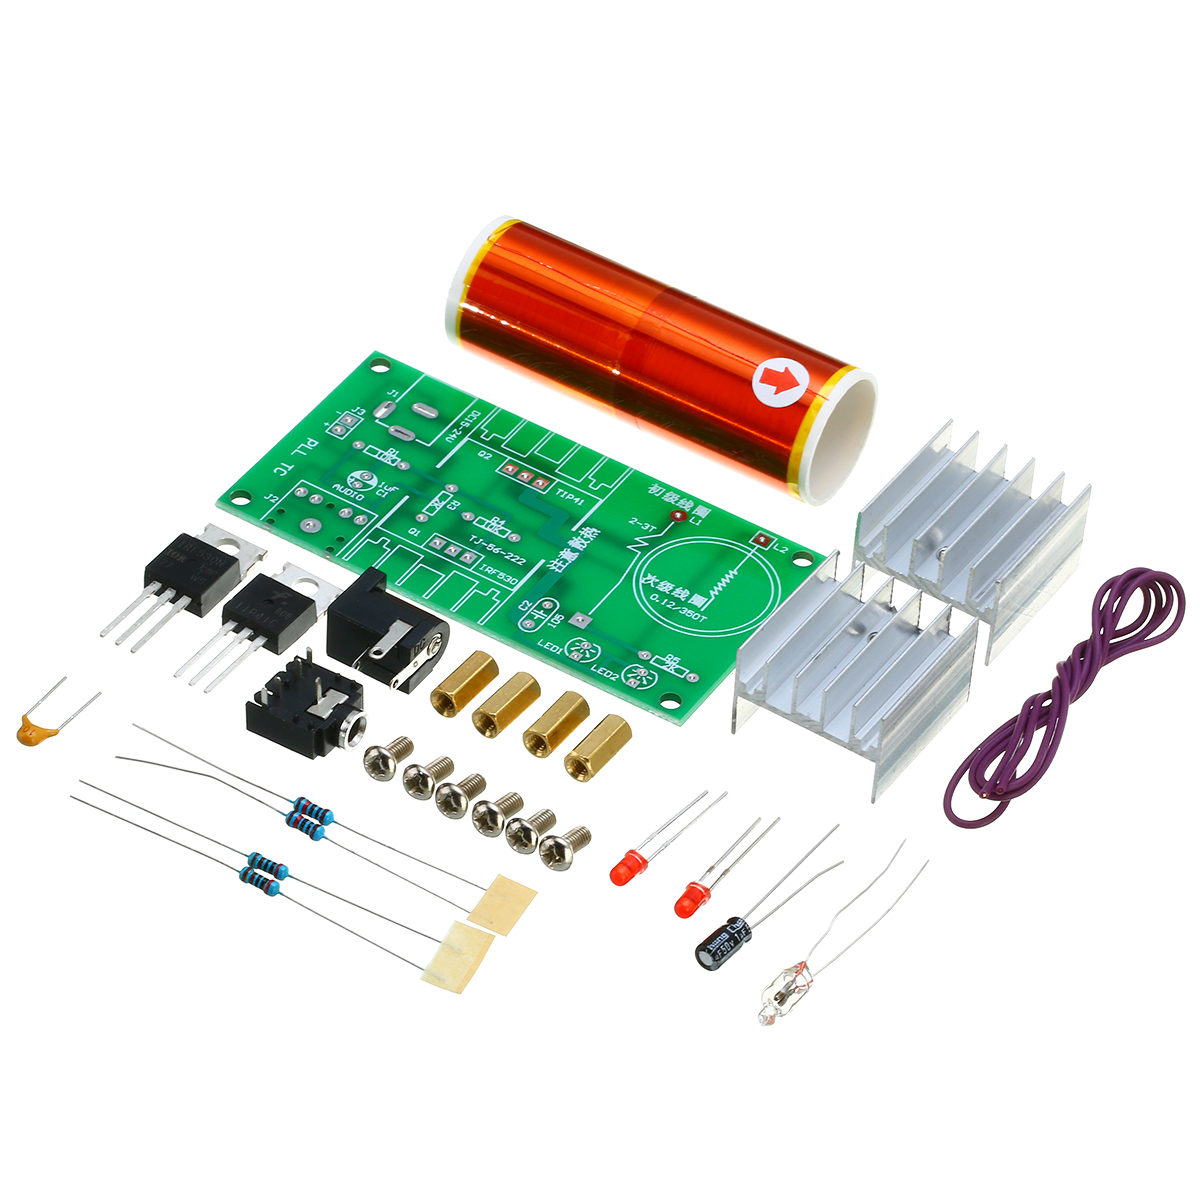 New Mini Tesla Coil Plasma Speaker Electronic Kit 15W DIY Making Parts With Stainless Ball + Metal Film Resistor + 3mm LED Set electronic component